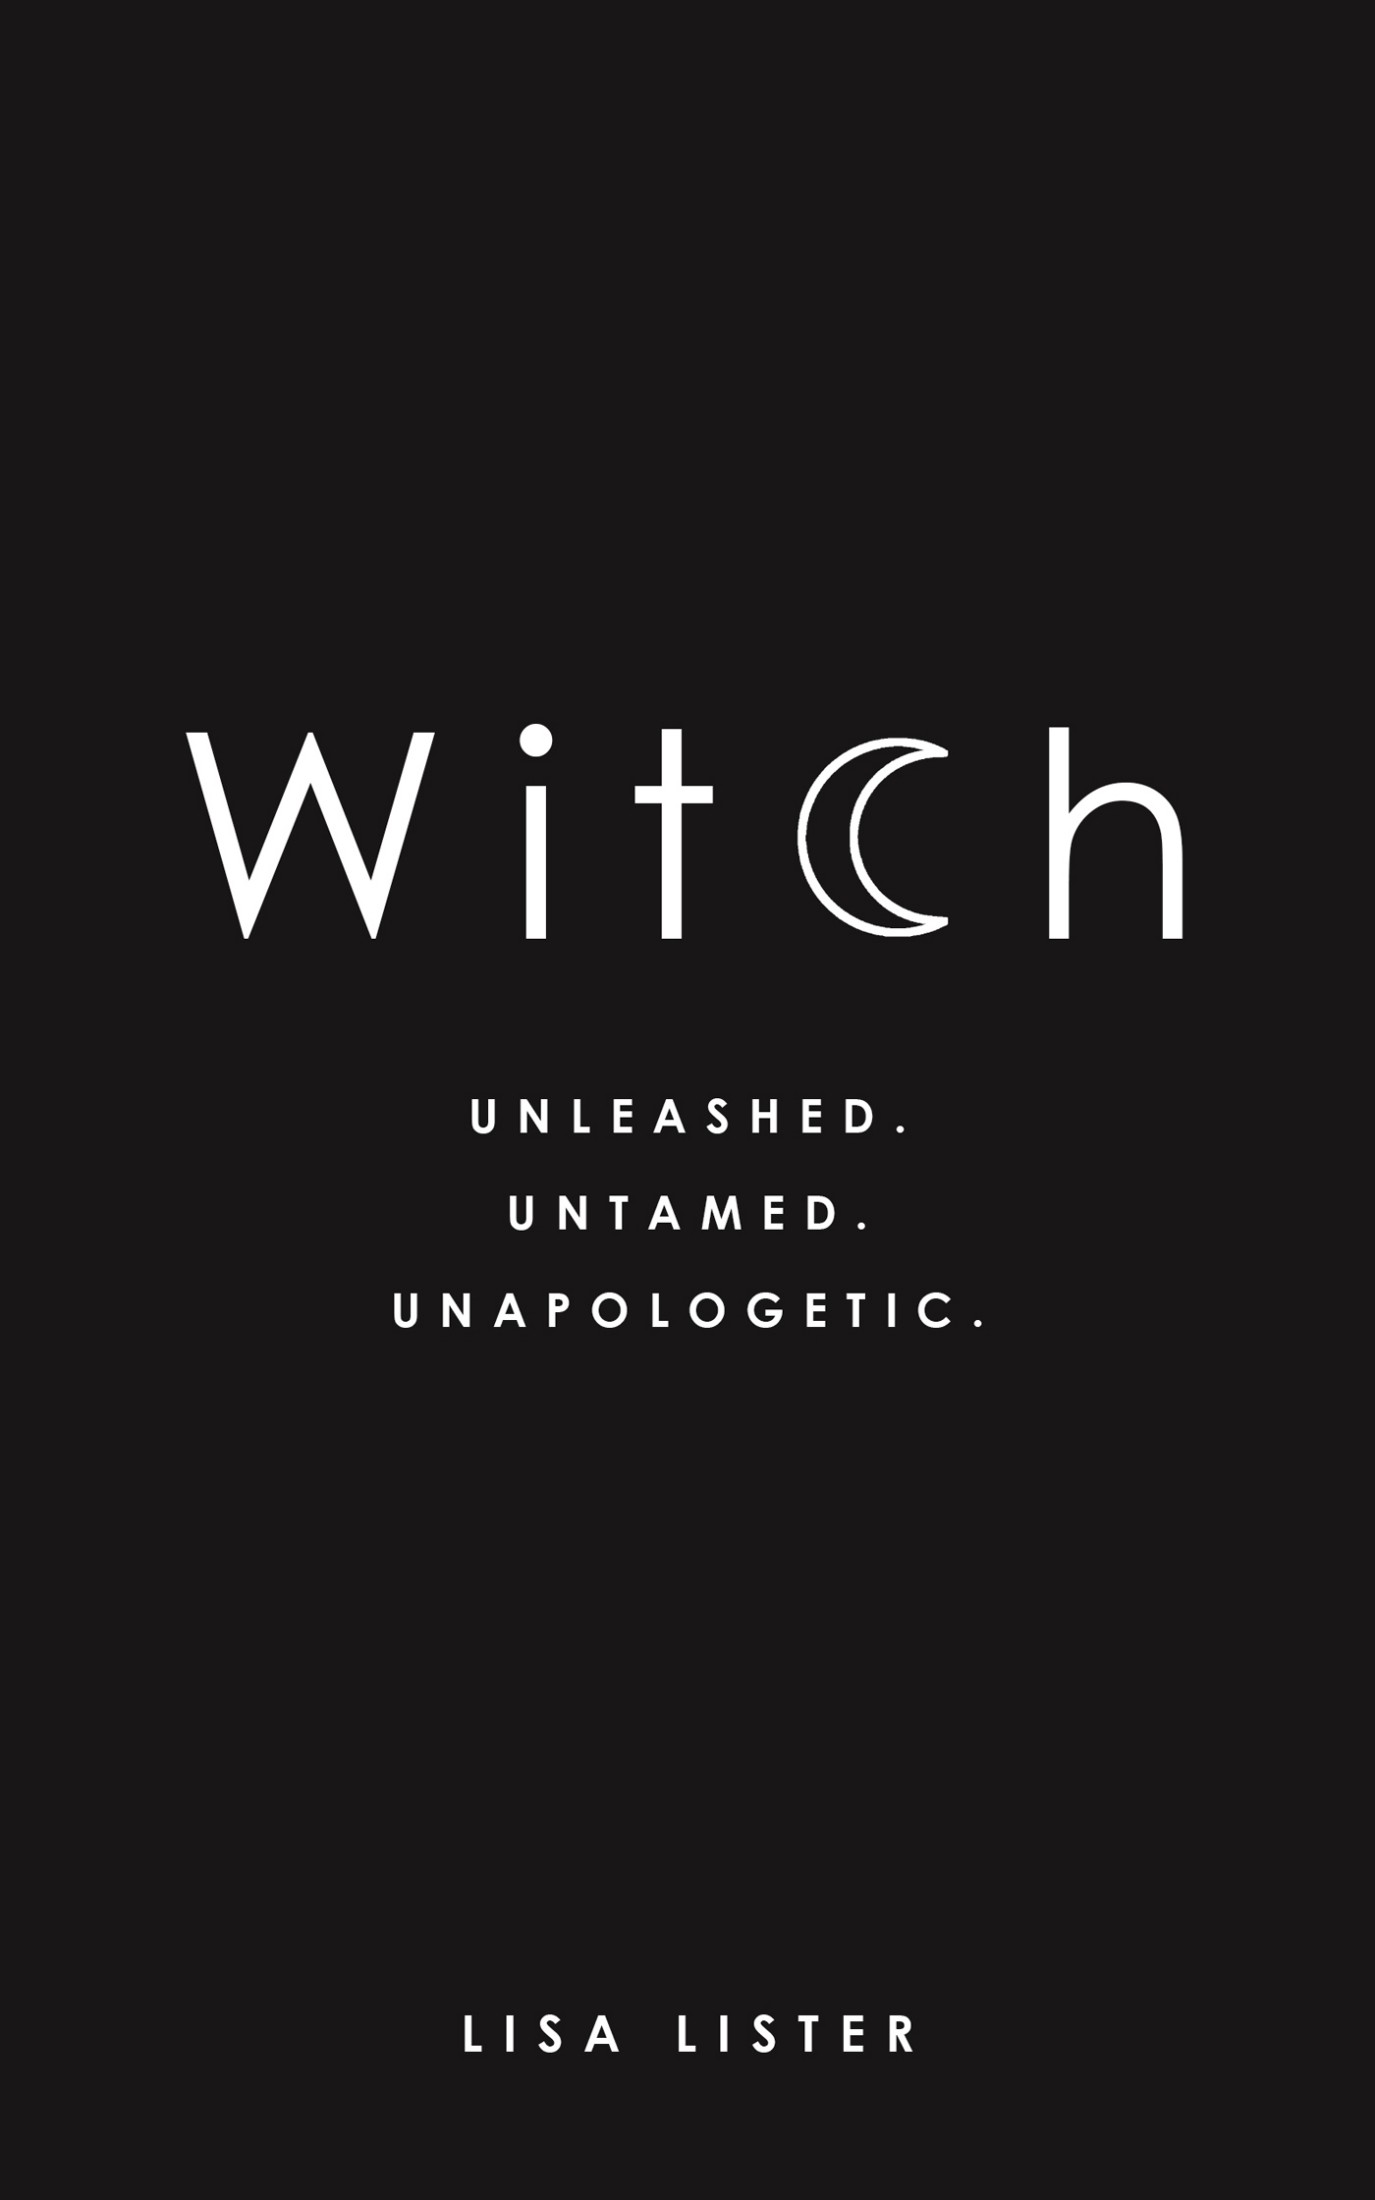 Witch Unleashed. Untamed. Unapologetic.